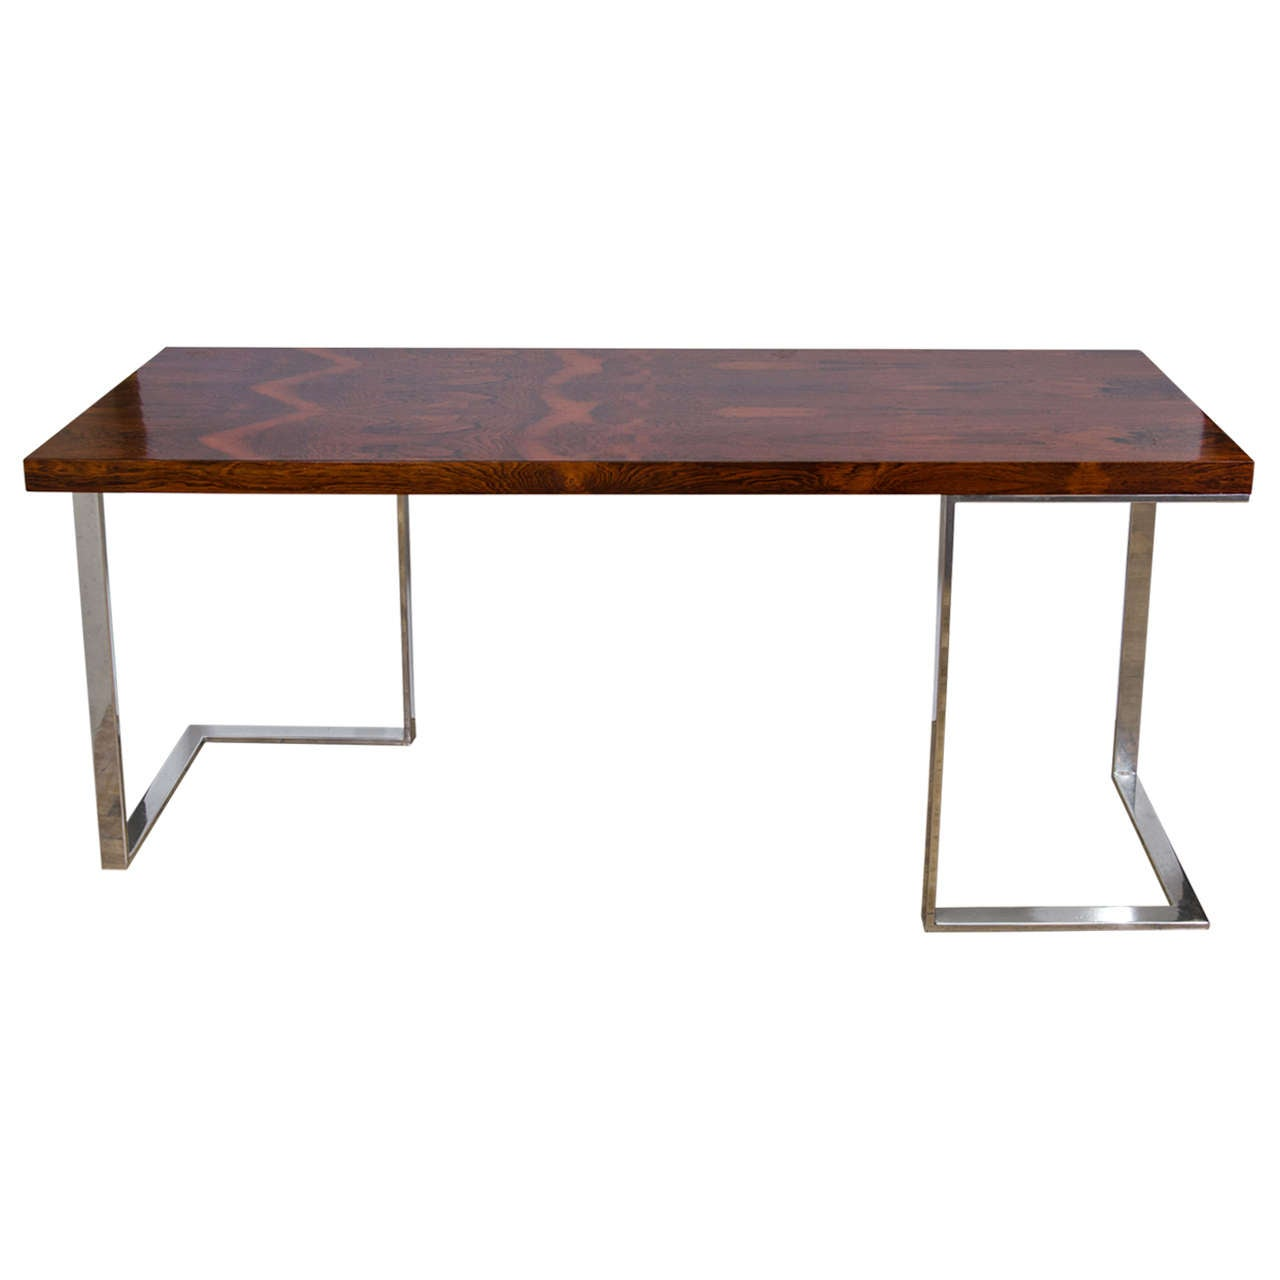 Milo Baughman Console Tables at 1stdibs